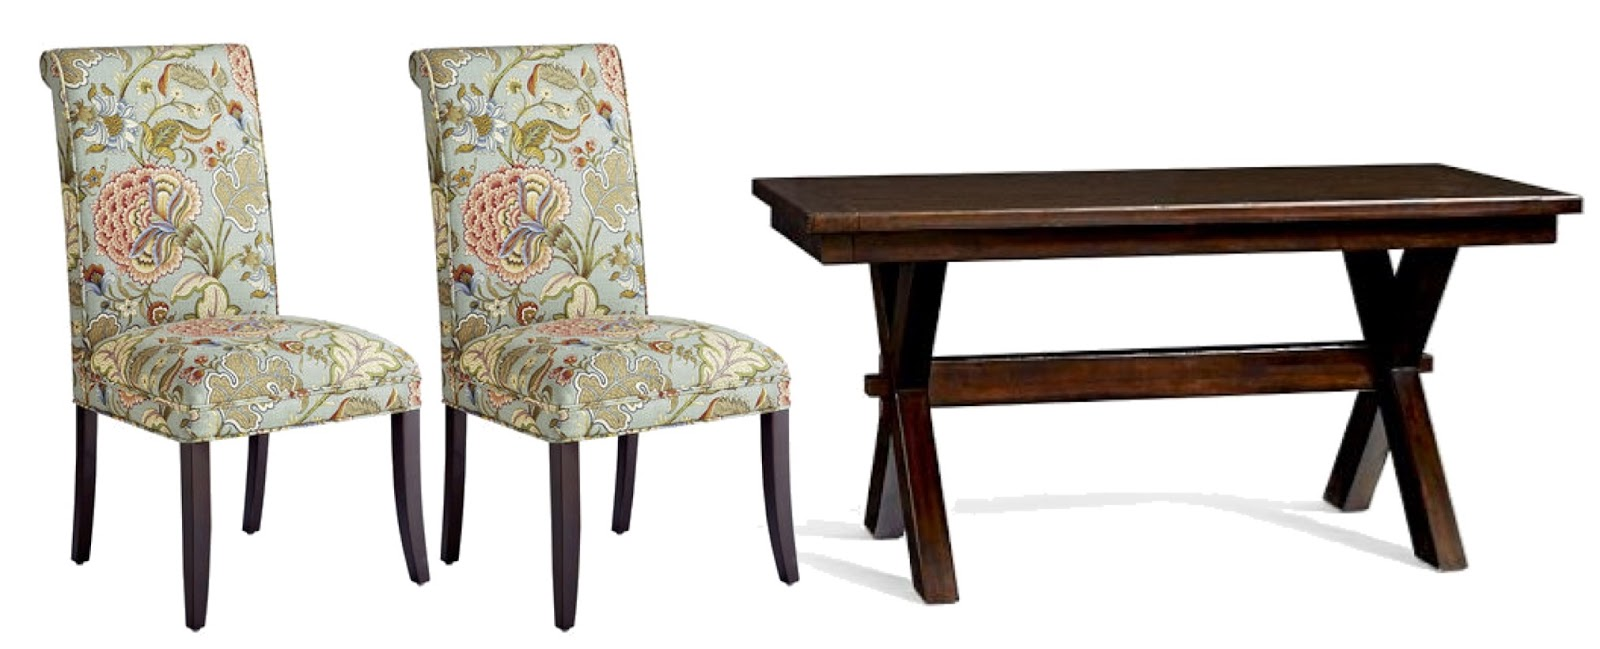 Contemporary Fabric Dining Chairs Pier One Preppy Navy A Intended ...